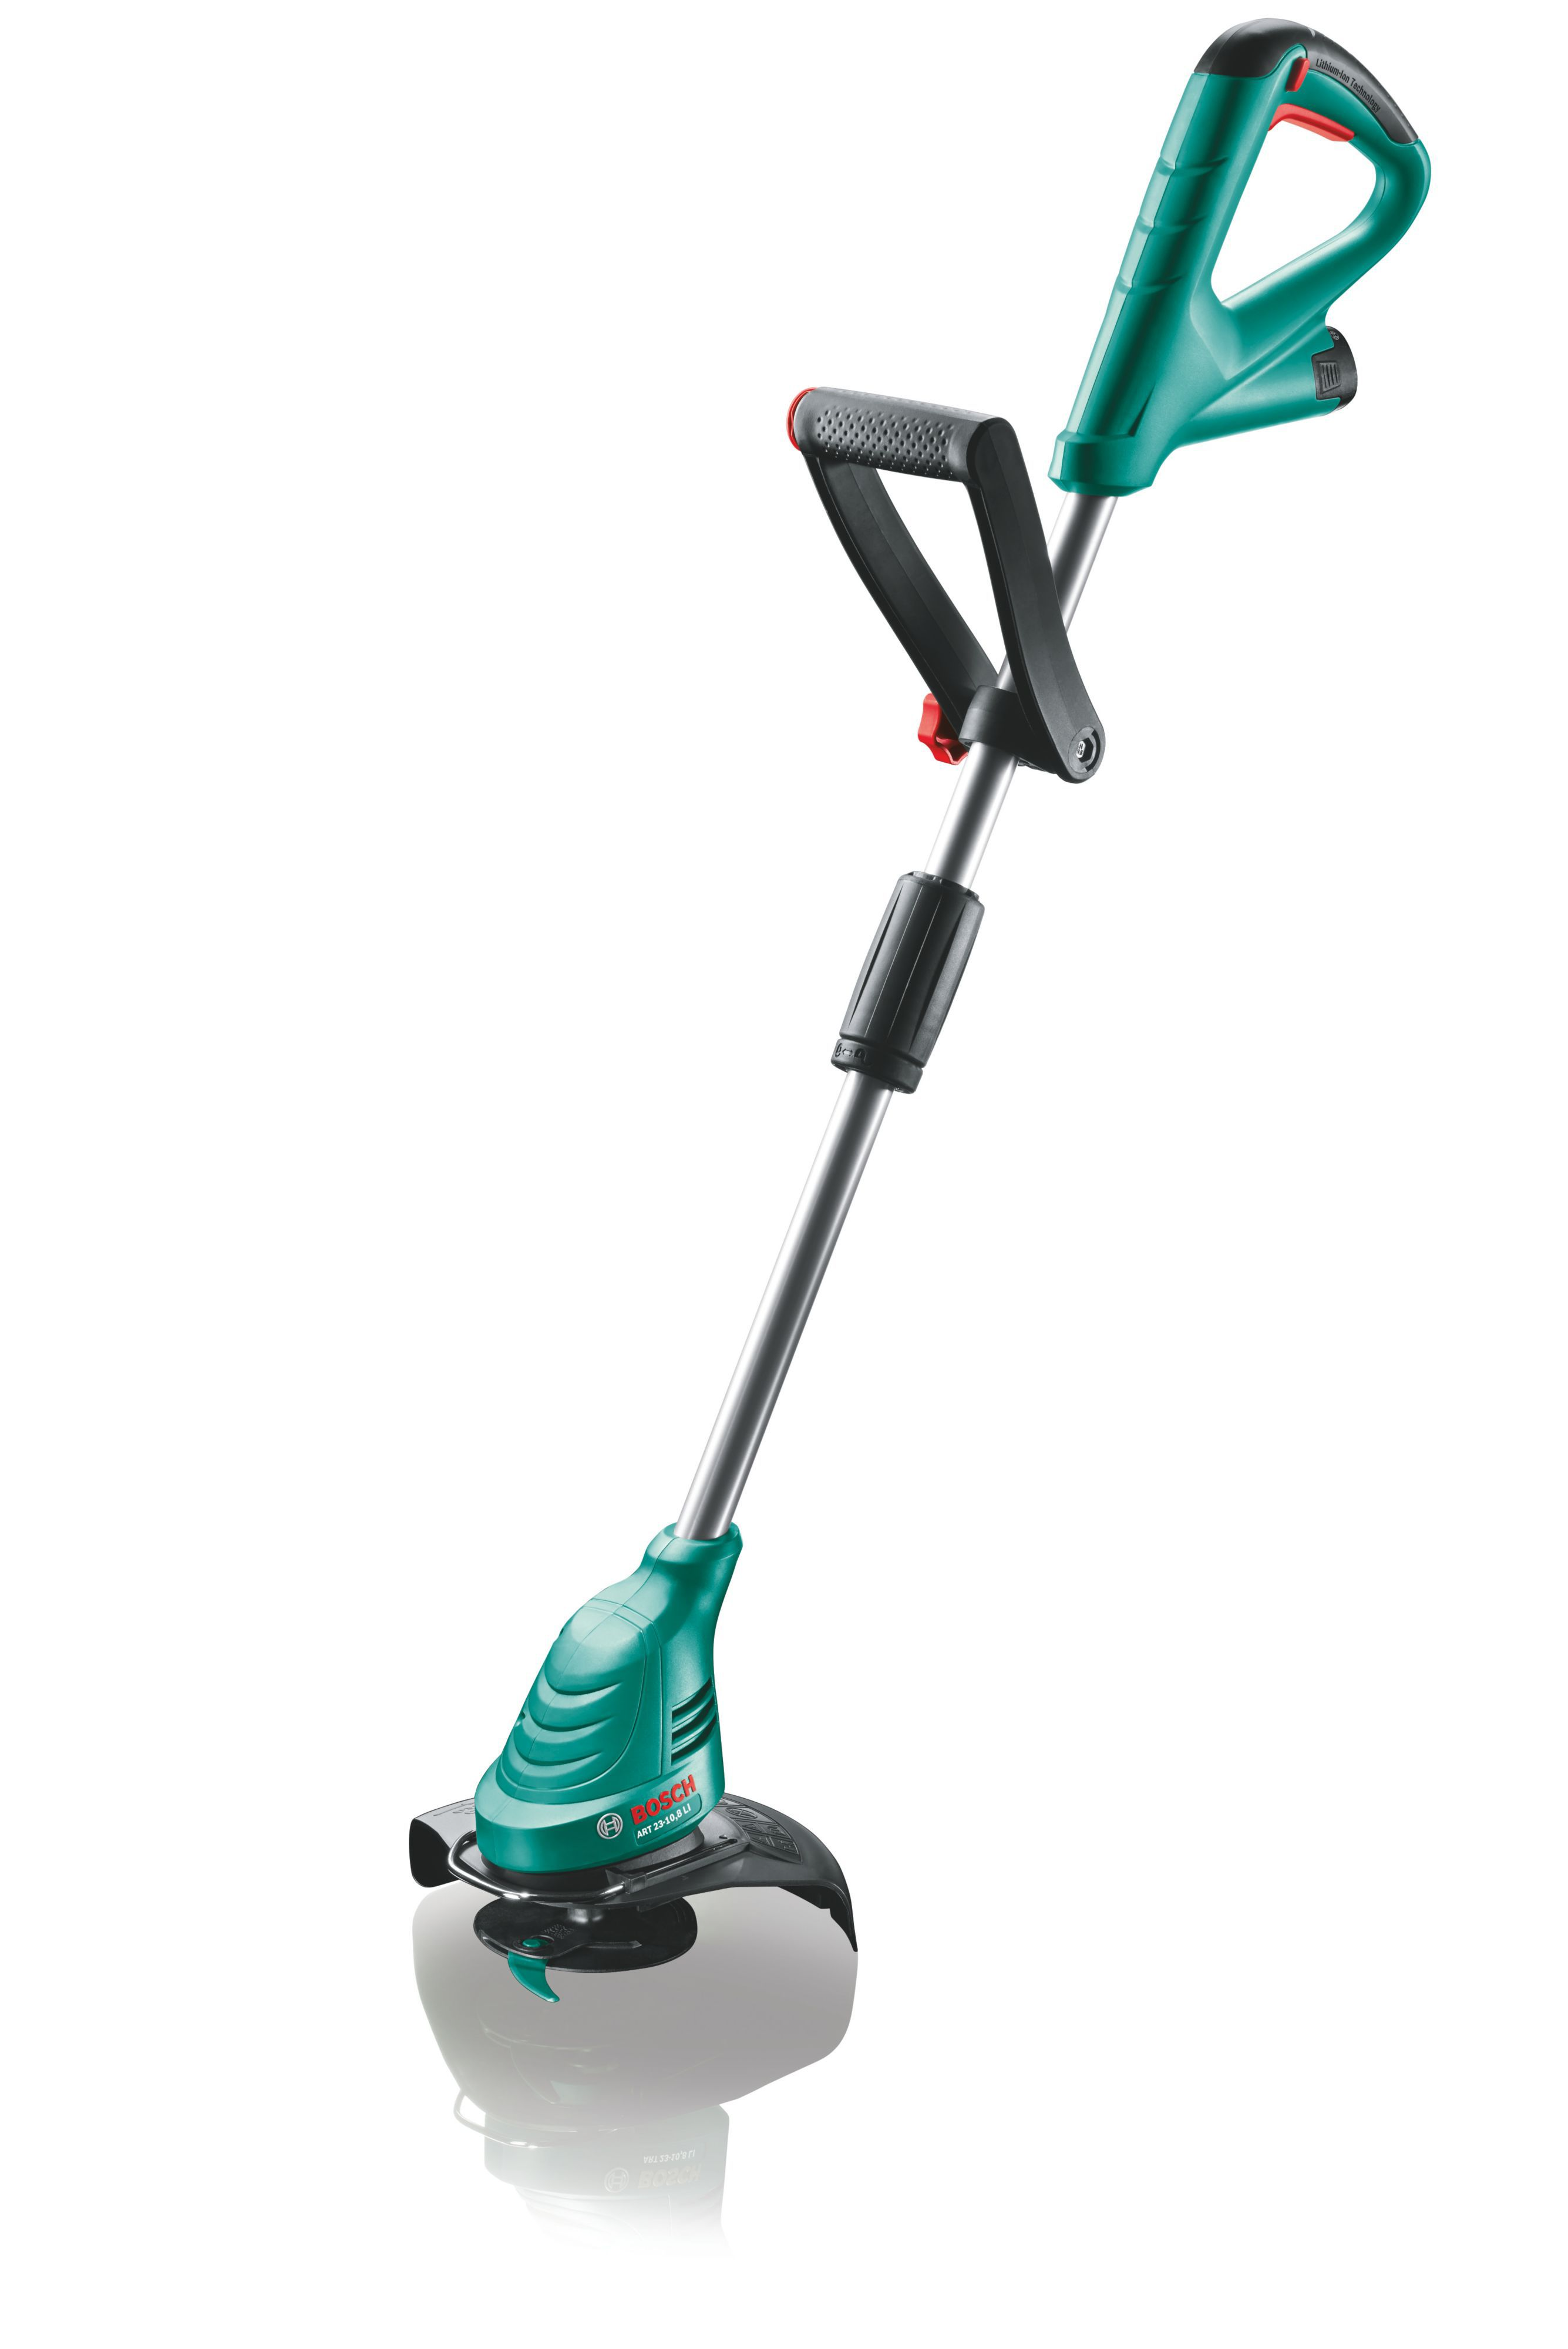 Adesivos De Parede Westwing ~ Bosch EASYGRASSCUT 12 23 Battery Cordless Lithium Ion Grass Trimmer Departments DIY at B&Q